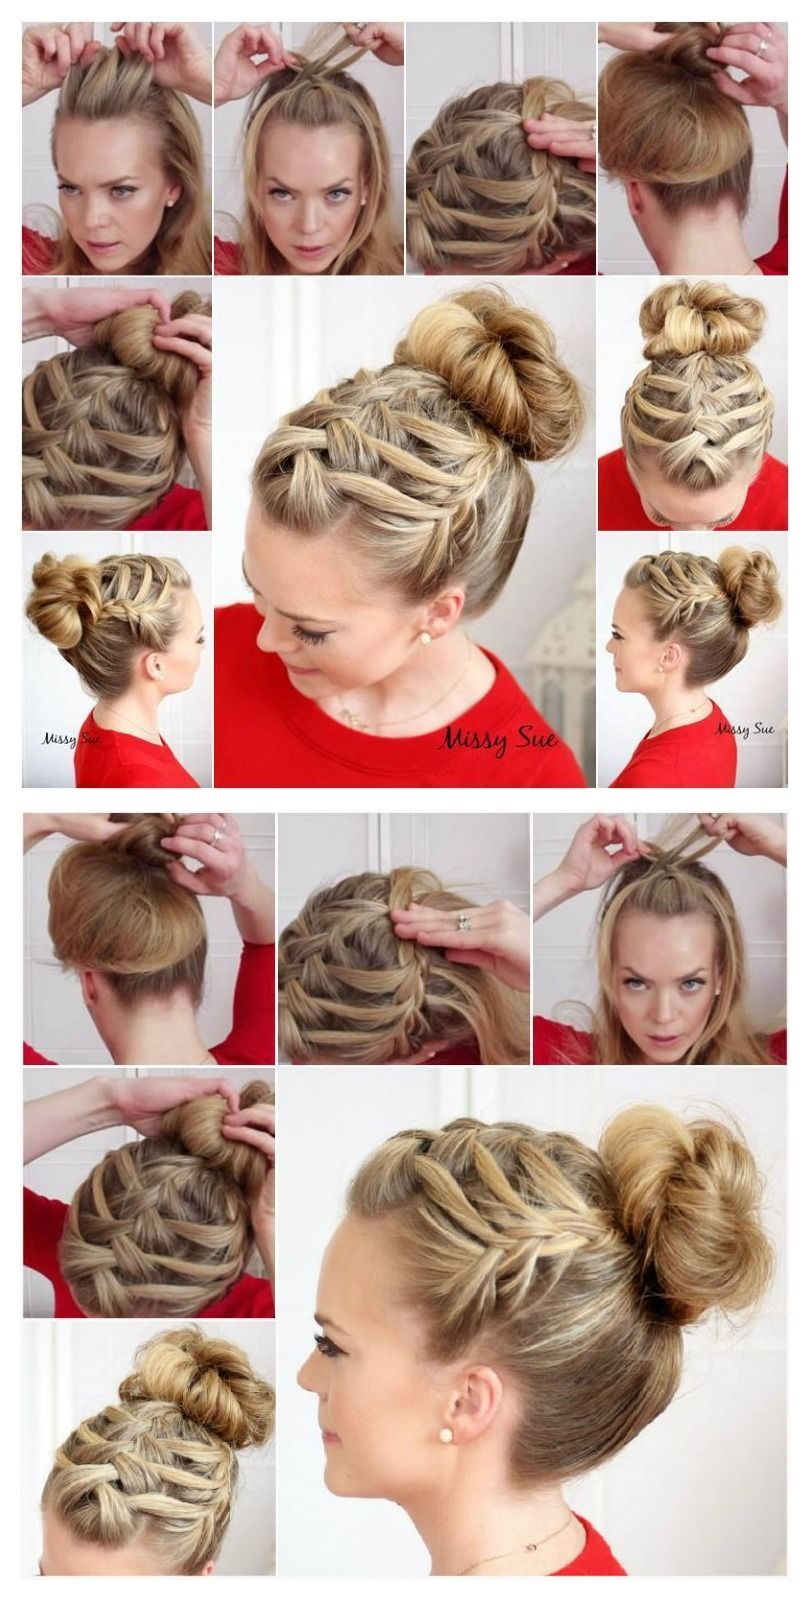 Triple French Braid Double Waterfall Hairstyle Tutorial Pictures How To French  Braid For Beginners : Juriewiczfo